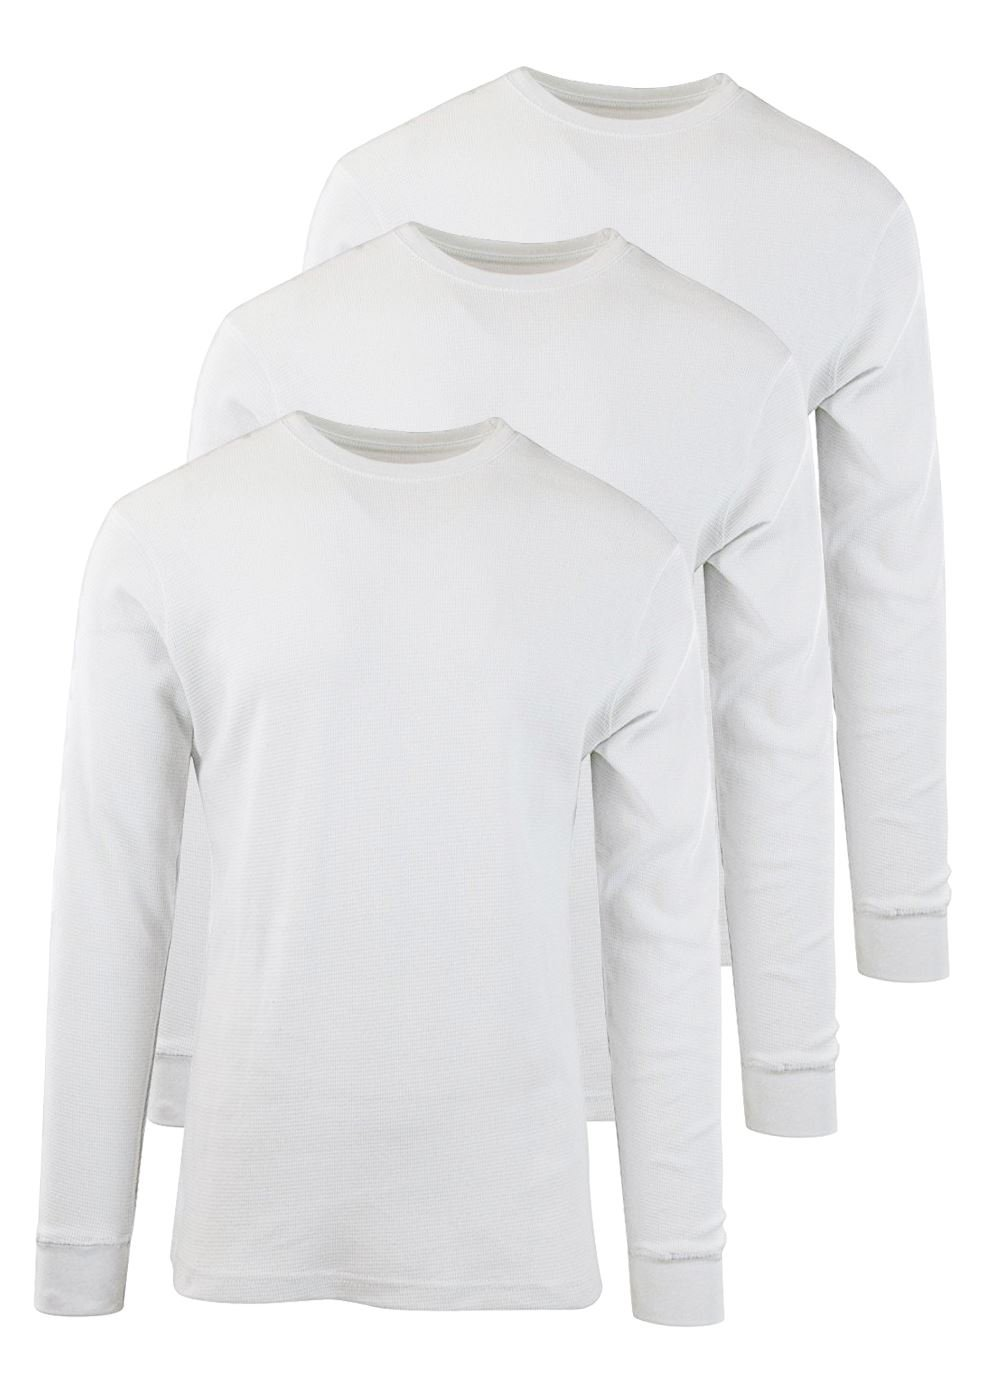 Byn Dynasty Thermal 3 Pack Long Sleeve White 2X-Large